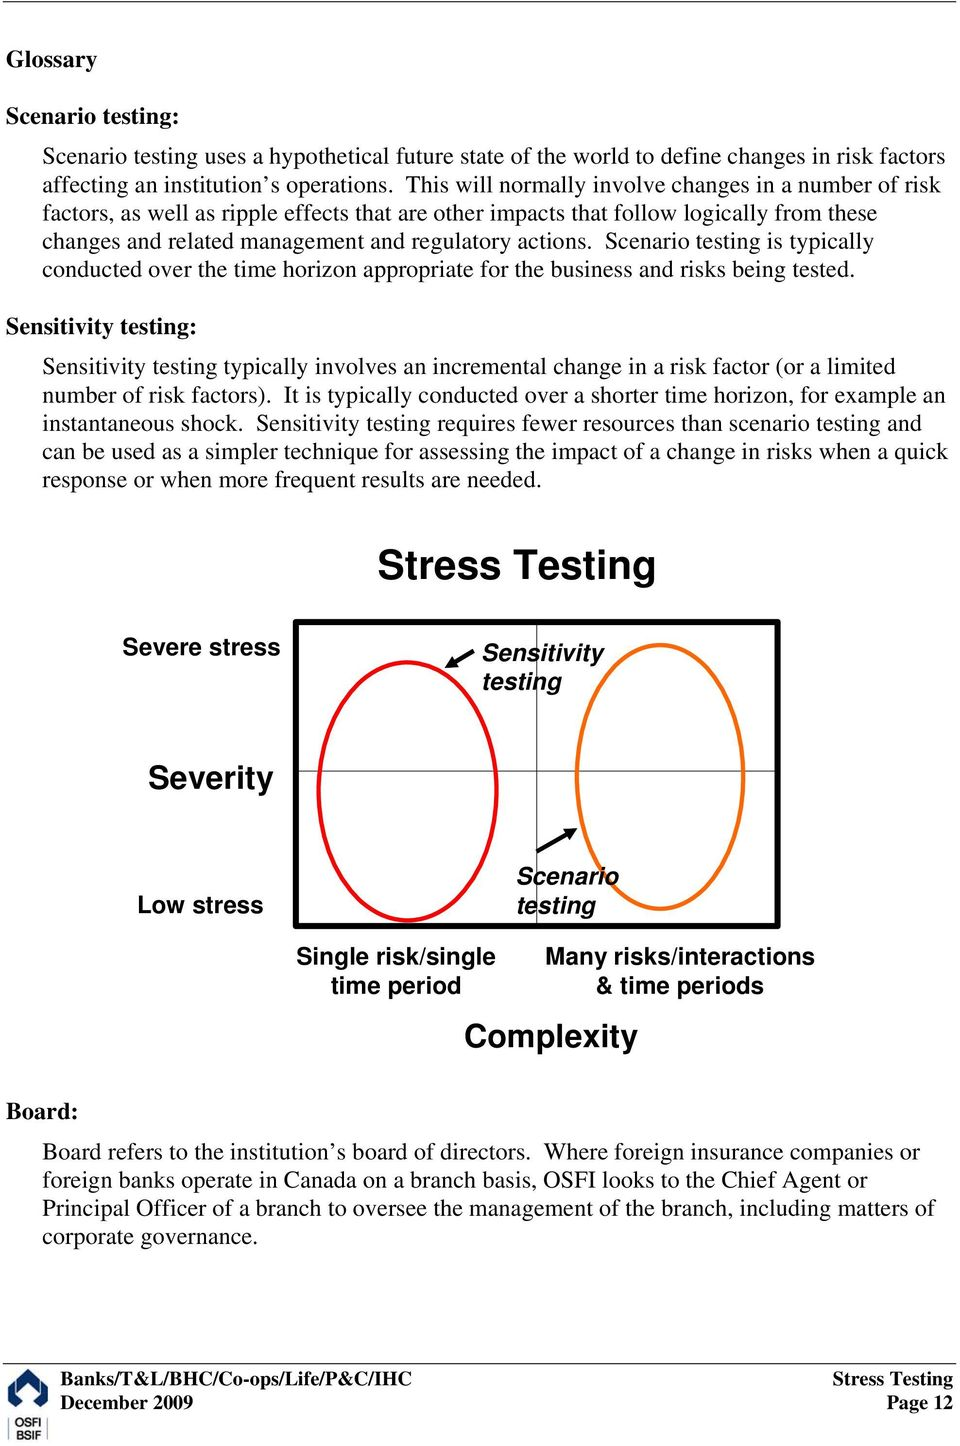 Scenario testing is typically conducted over the time horizon appropriate for the business and risks being tested.